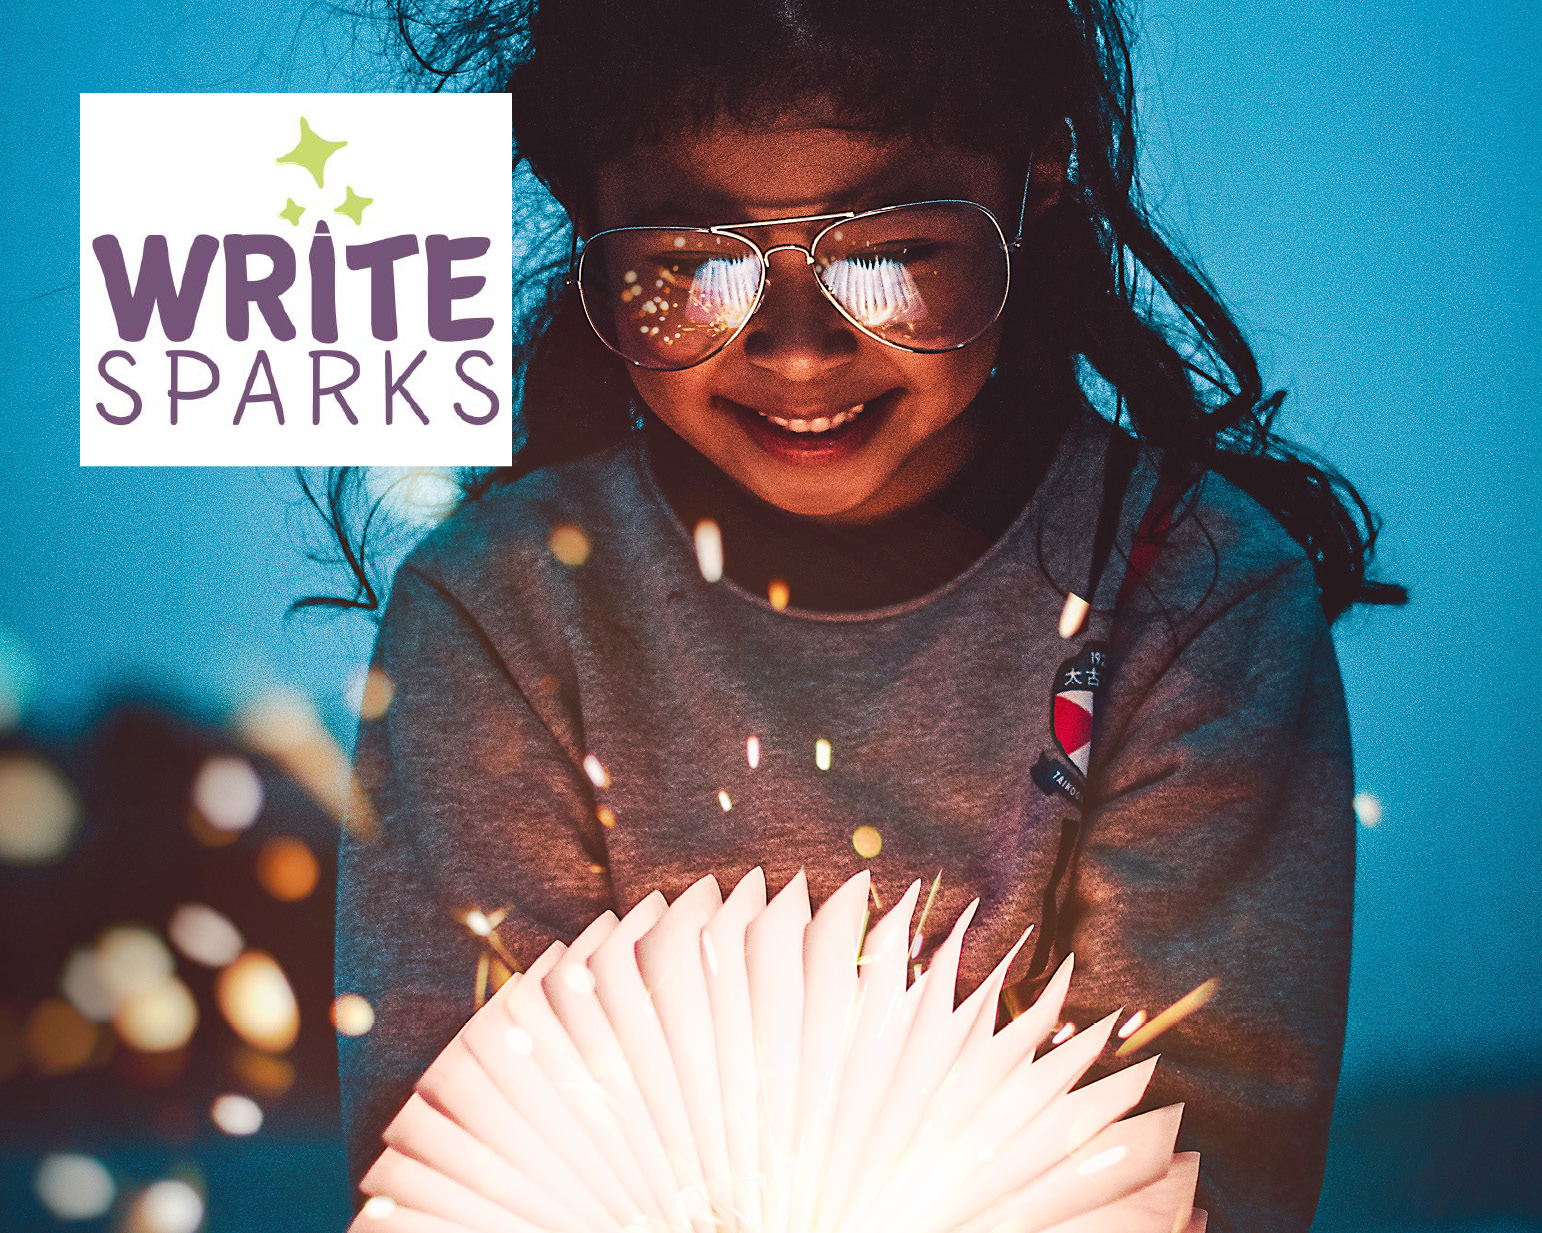 Introducing... Mini Write Sparks! - Check out regular events for children held at local venuesSee www.writesparks.co.uk for more information info@writesparks.co.uk